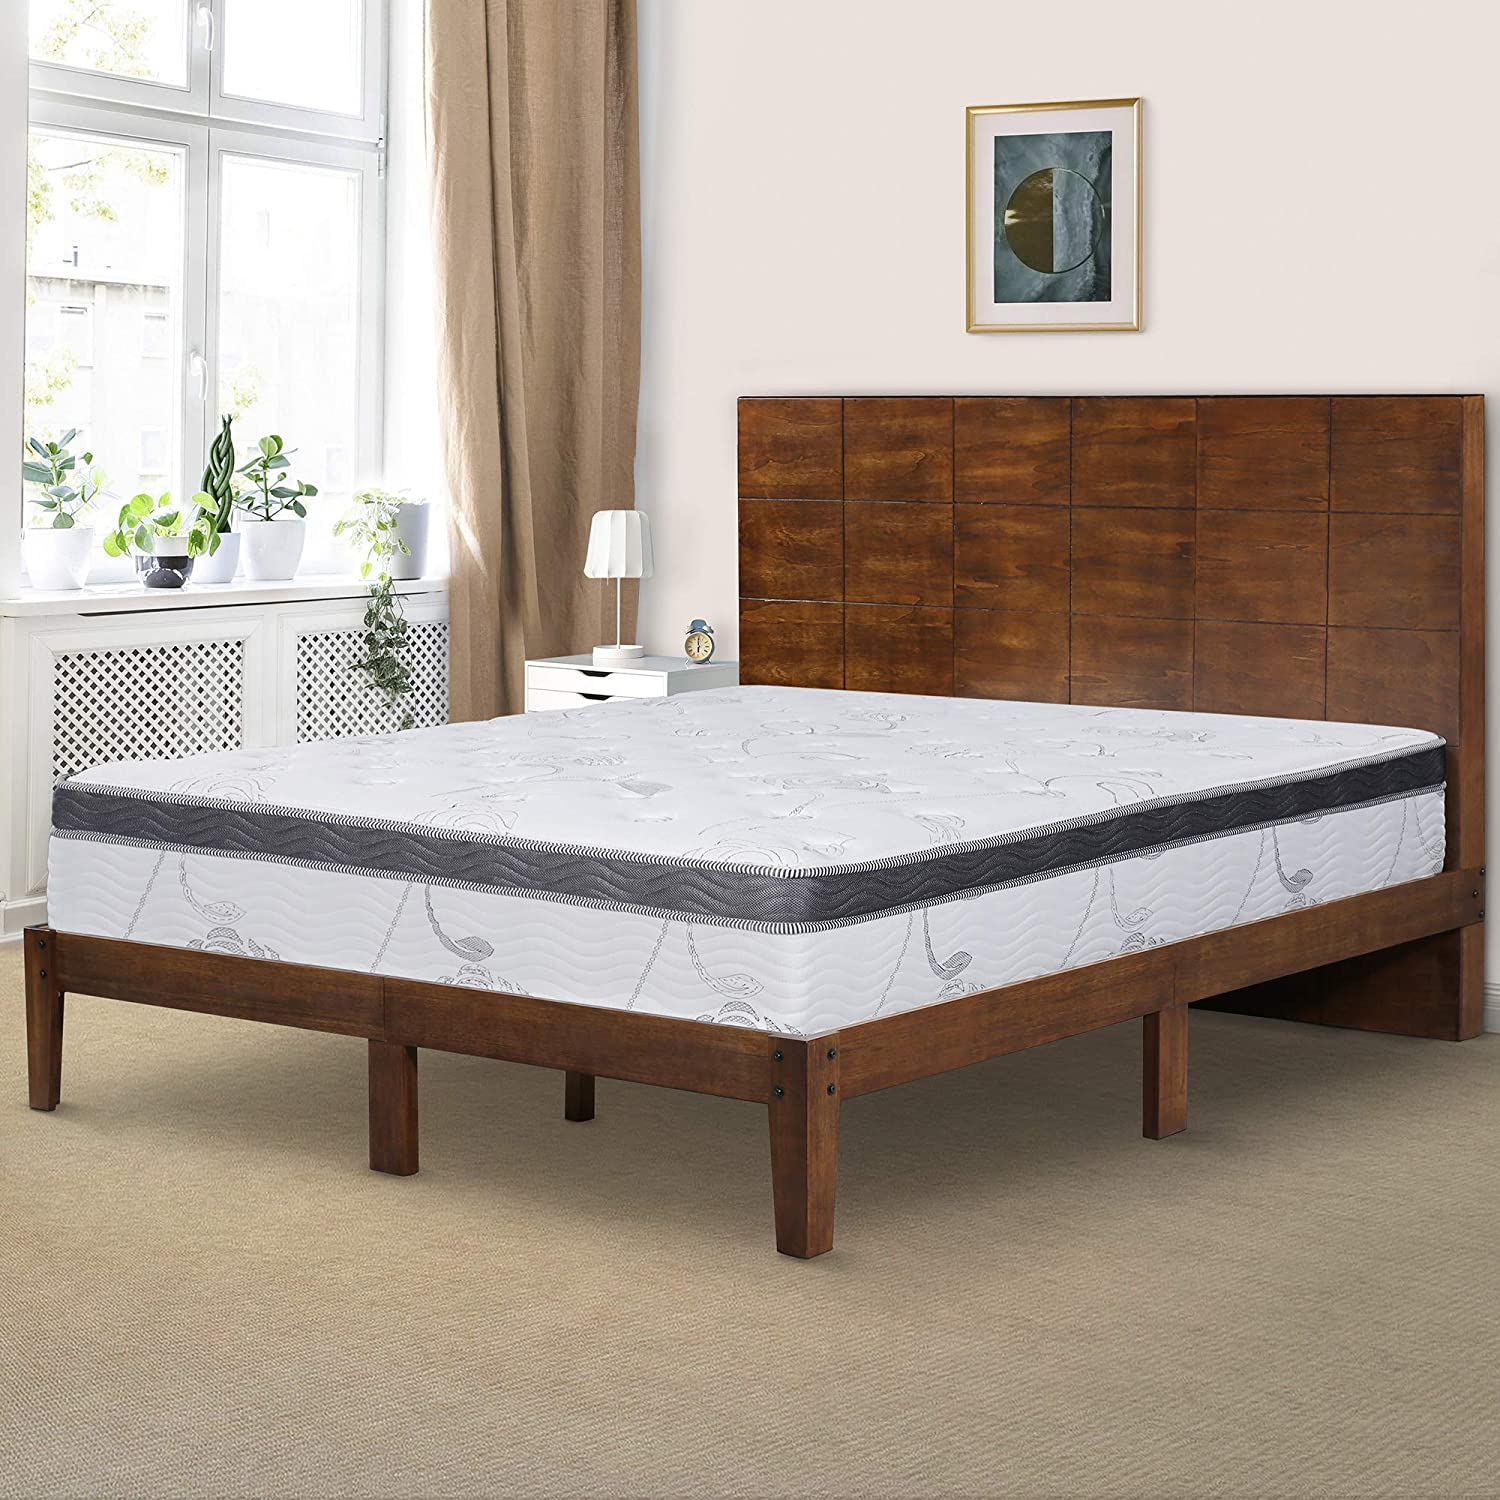 Ecos Living 48 Inch High Headboard Wood Platform Bed Frame with Slats No Box Spring Queen